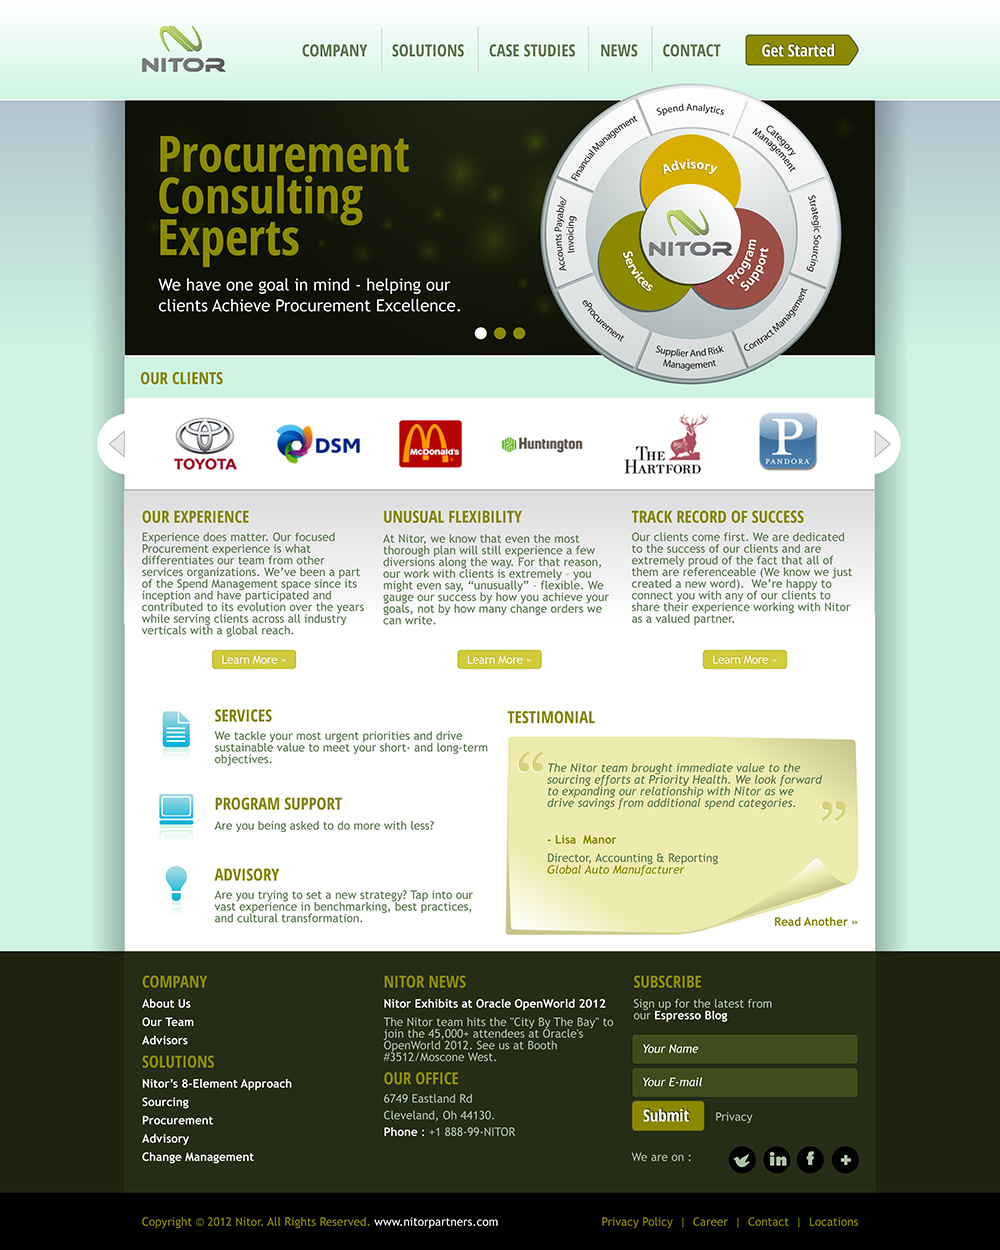 Web Page Design by scorpy - Entry No. 20 in the Web Page Design Contest Nitor Partners Web Page Design.